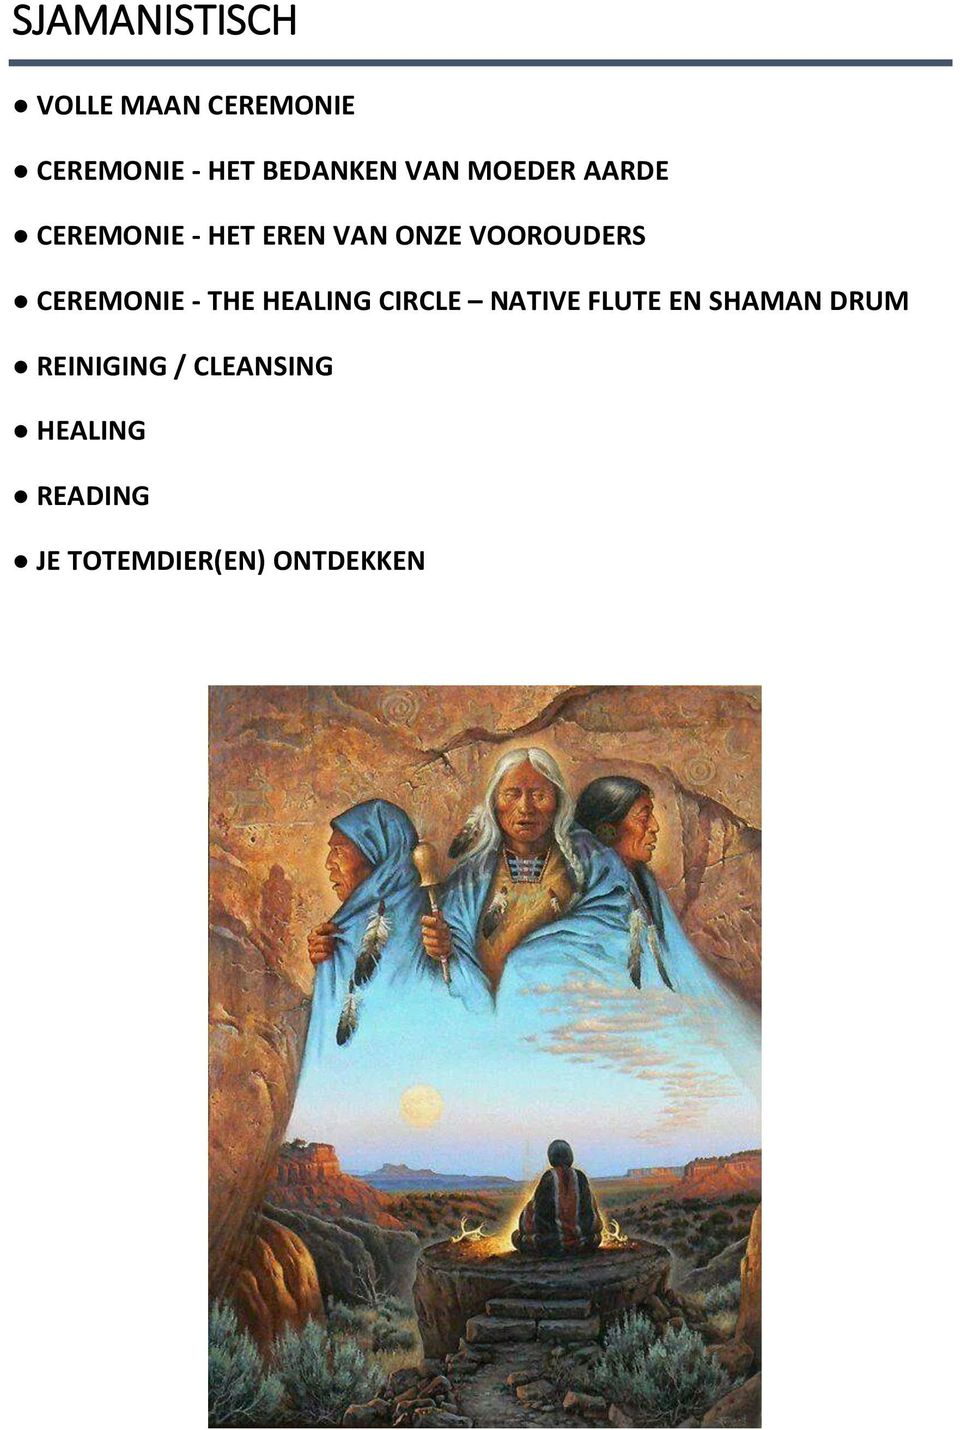 CEREMONIE - THE HEALING CIRCLE NATIVE FLUTE EN SHAMAN DRUM